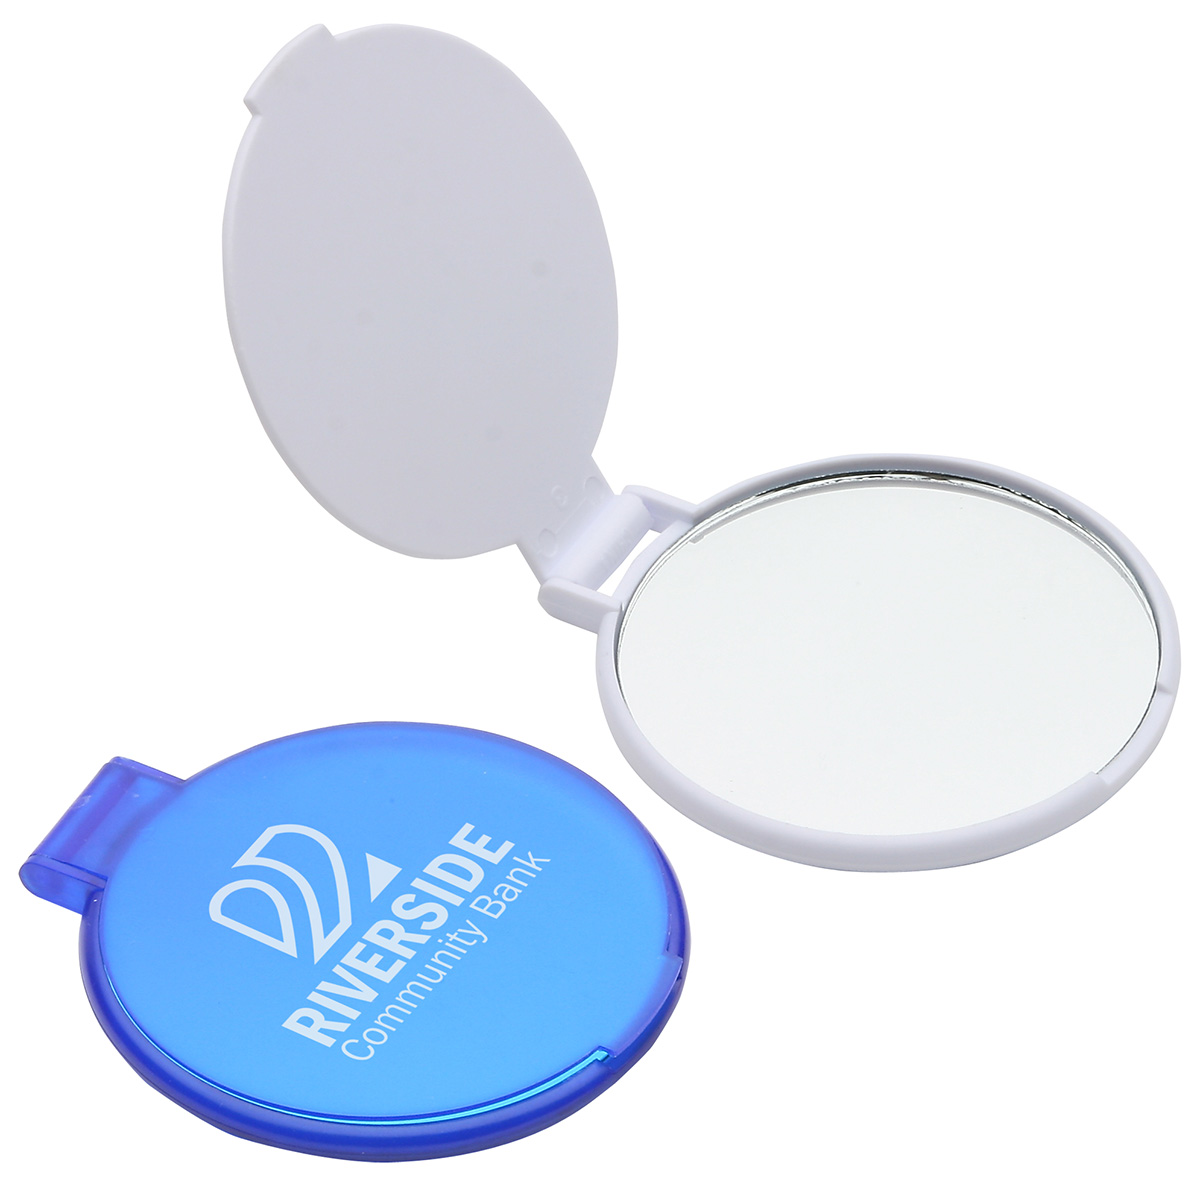 Ultra Thin Pocket Mirror, WPC-PM10, 1 Colour Imprint